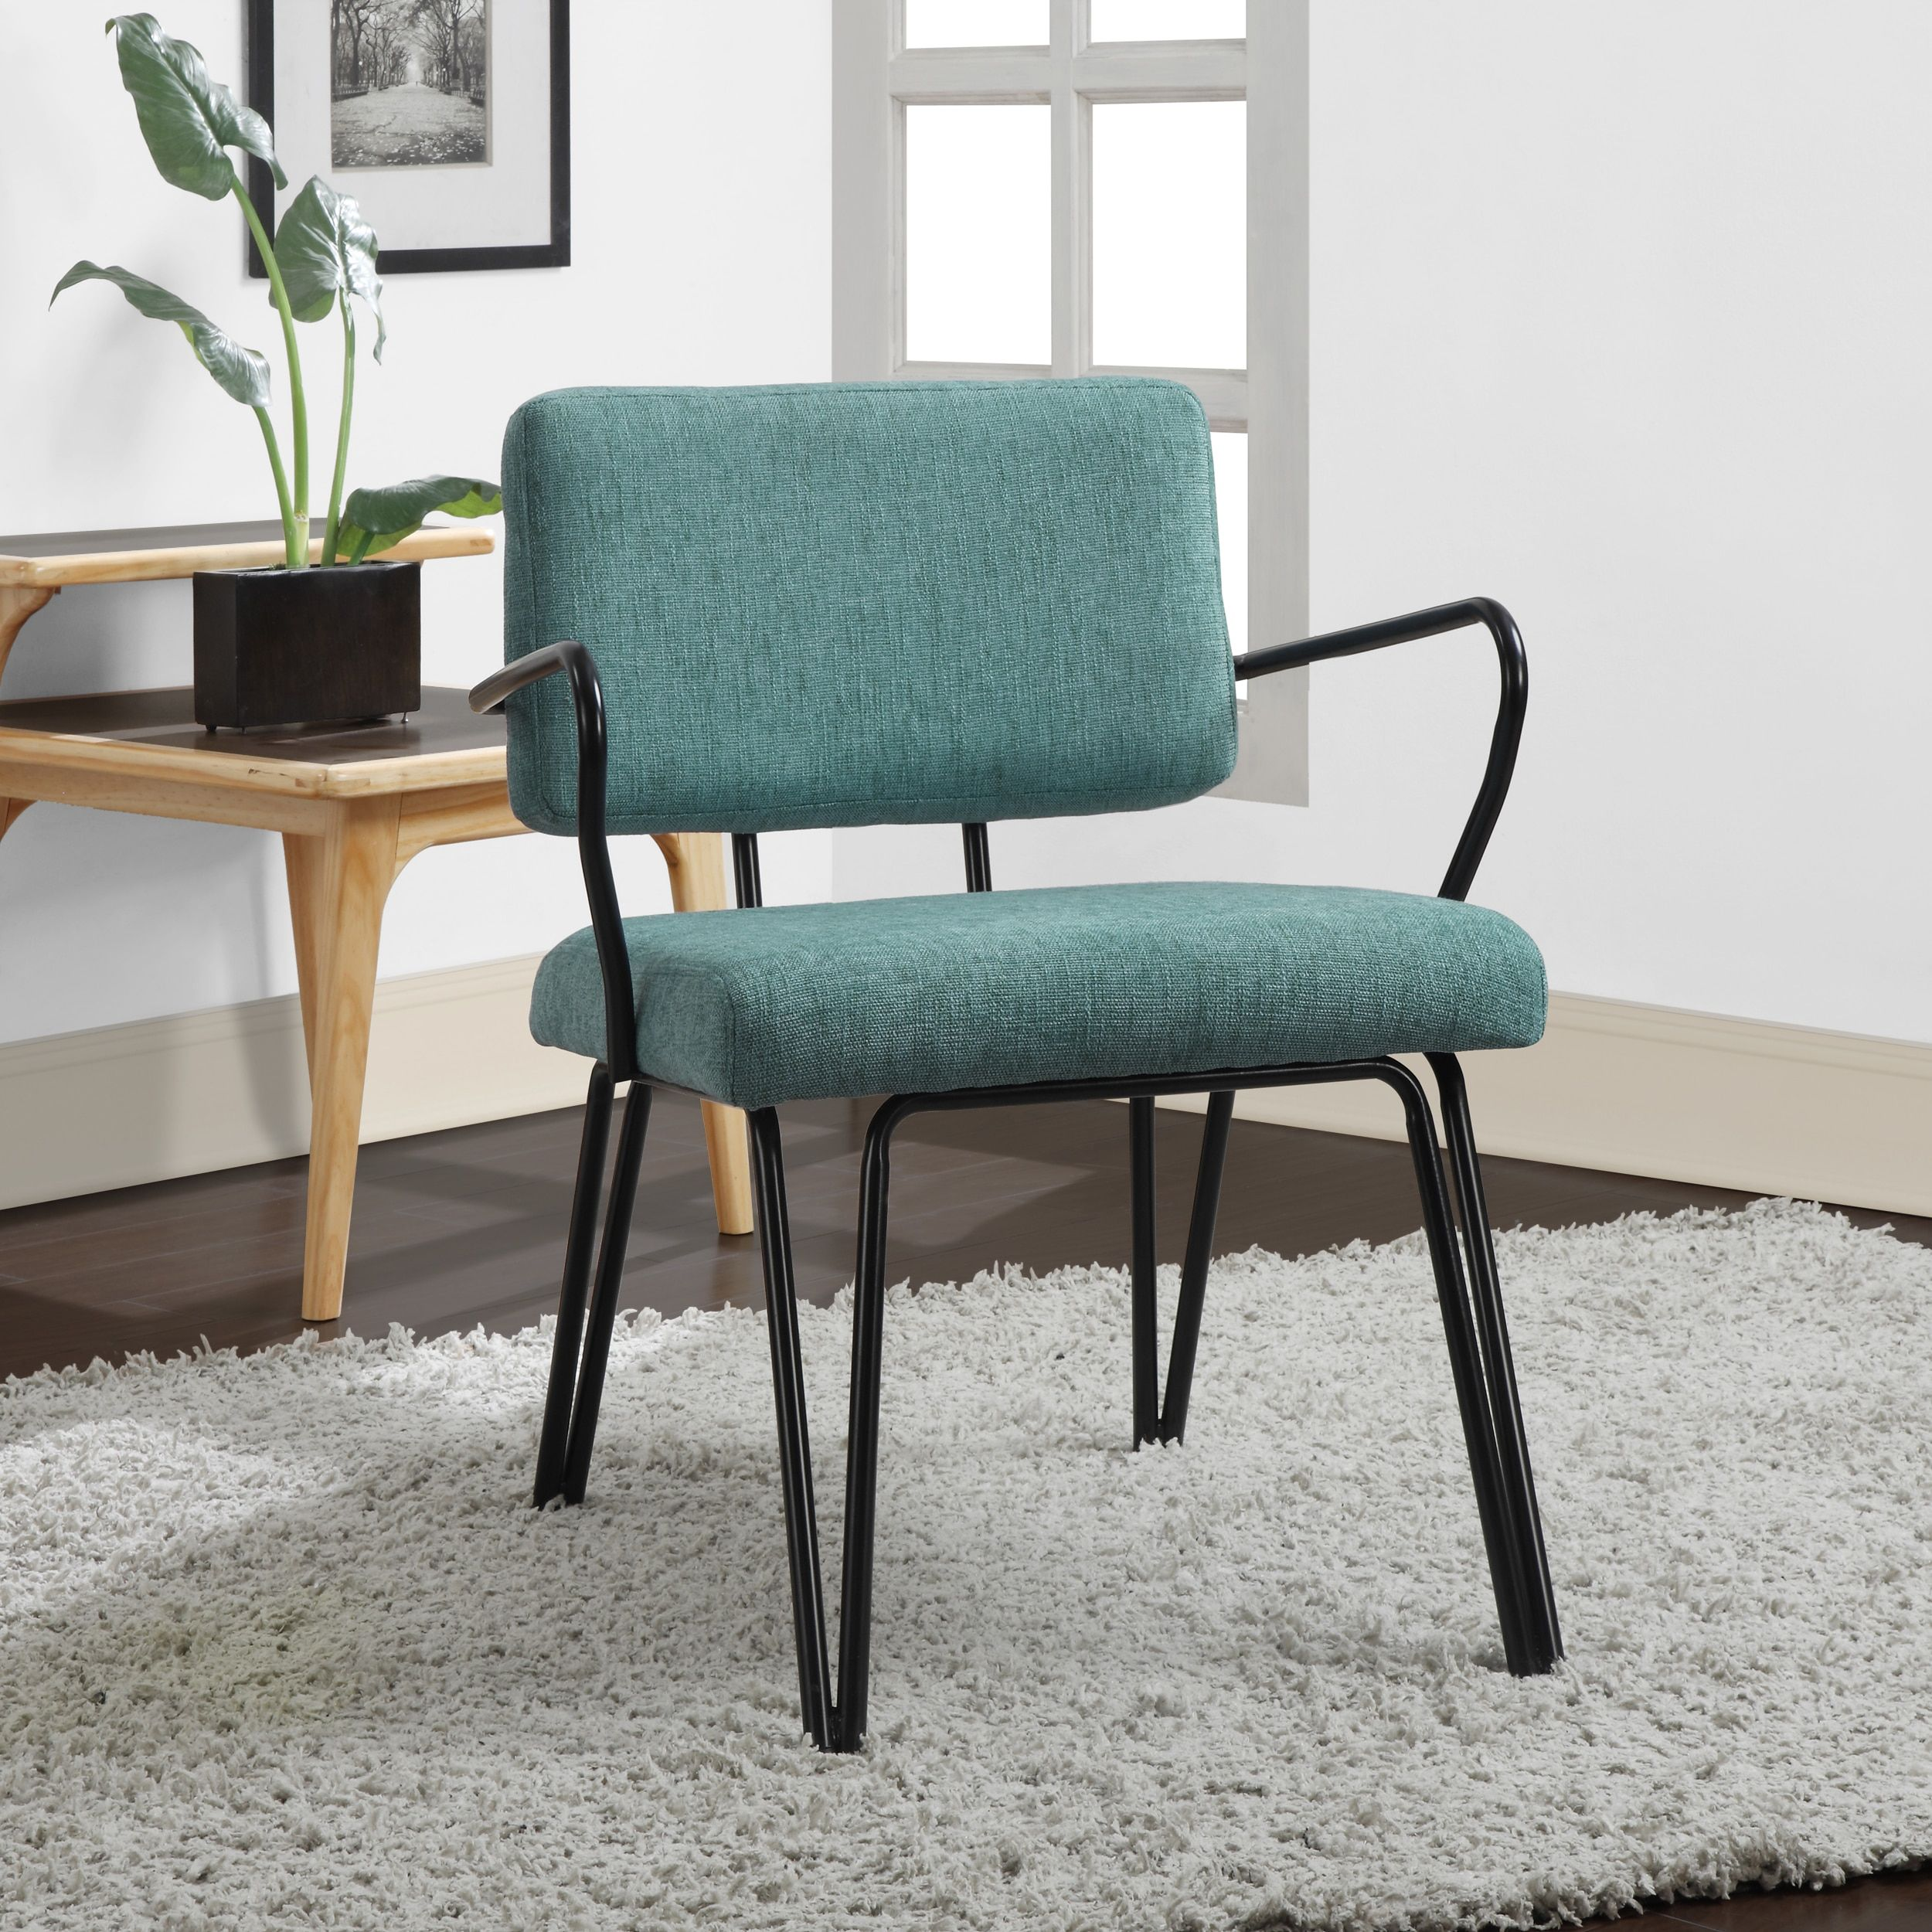 Living Room Furniture Free Shipping Palm Springs Blue Upholstery Mid Century Accent Chair By I Love